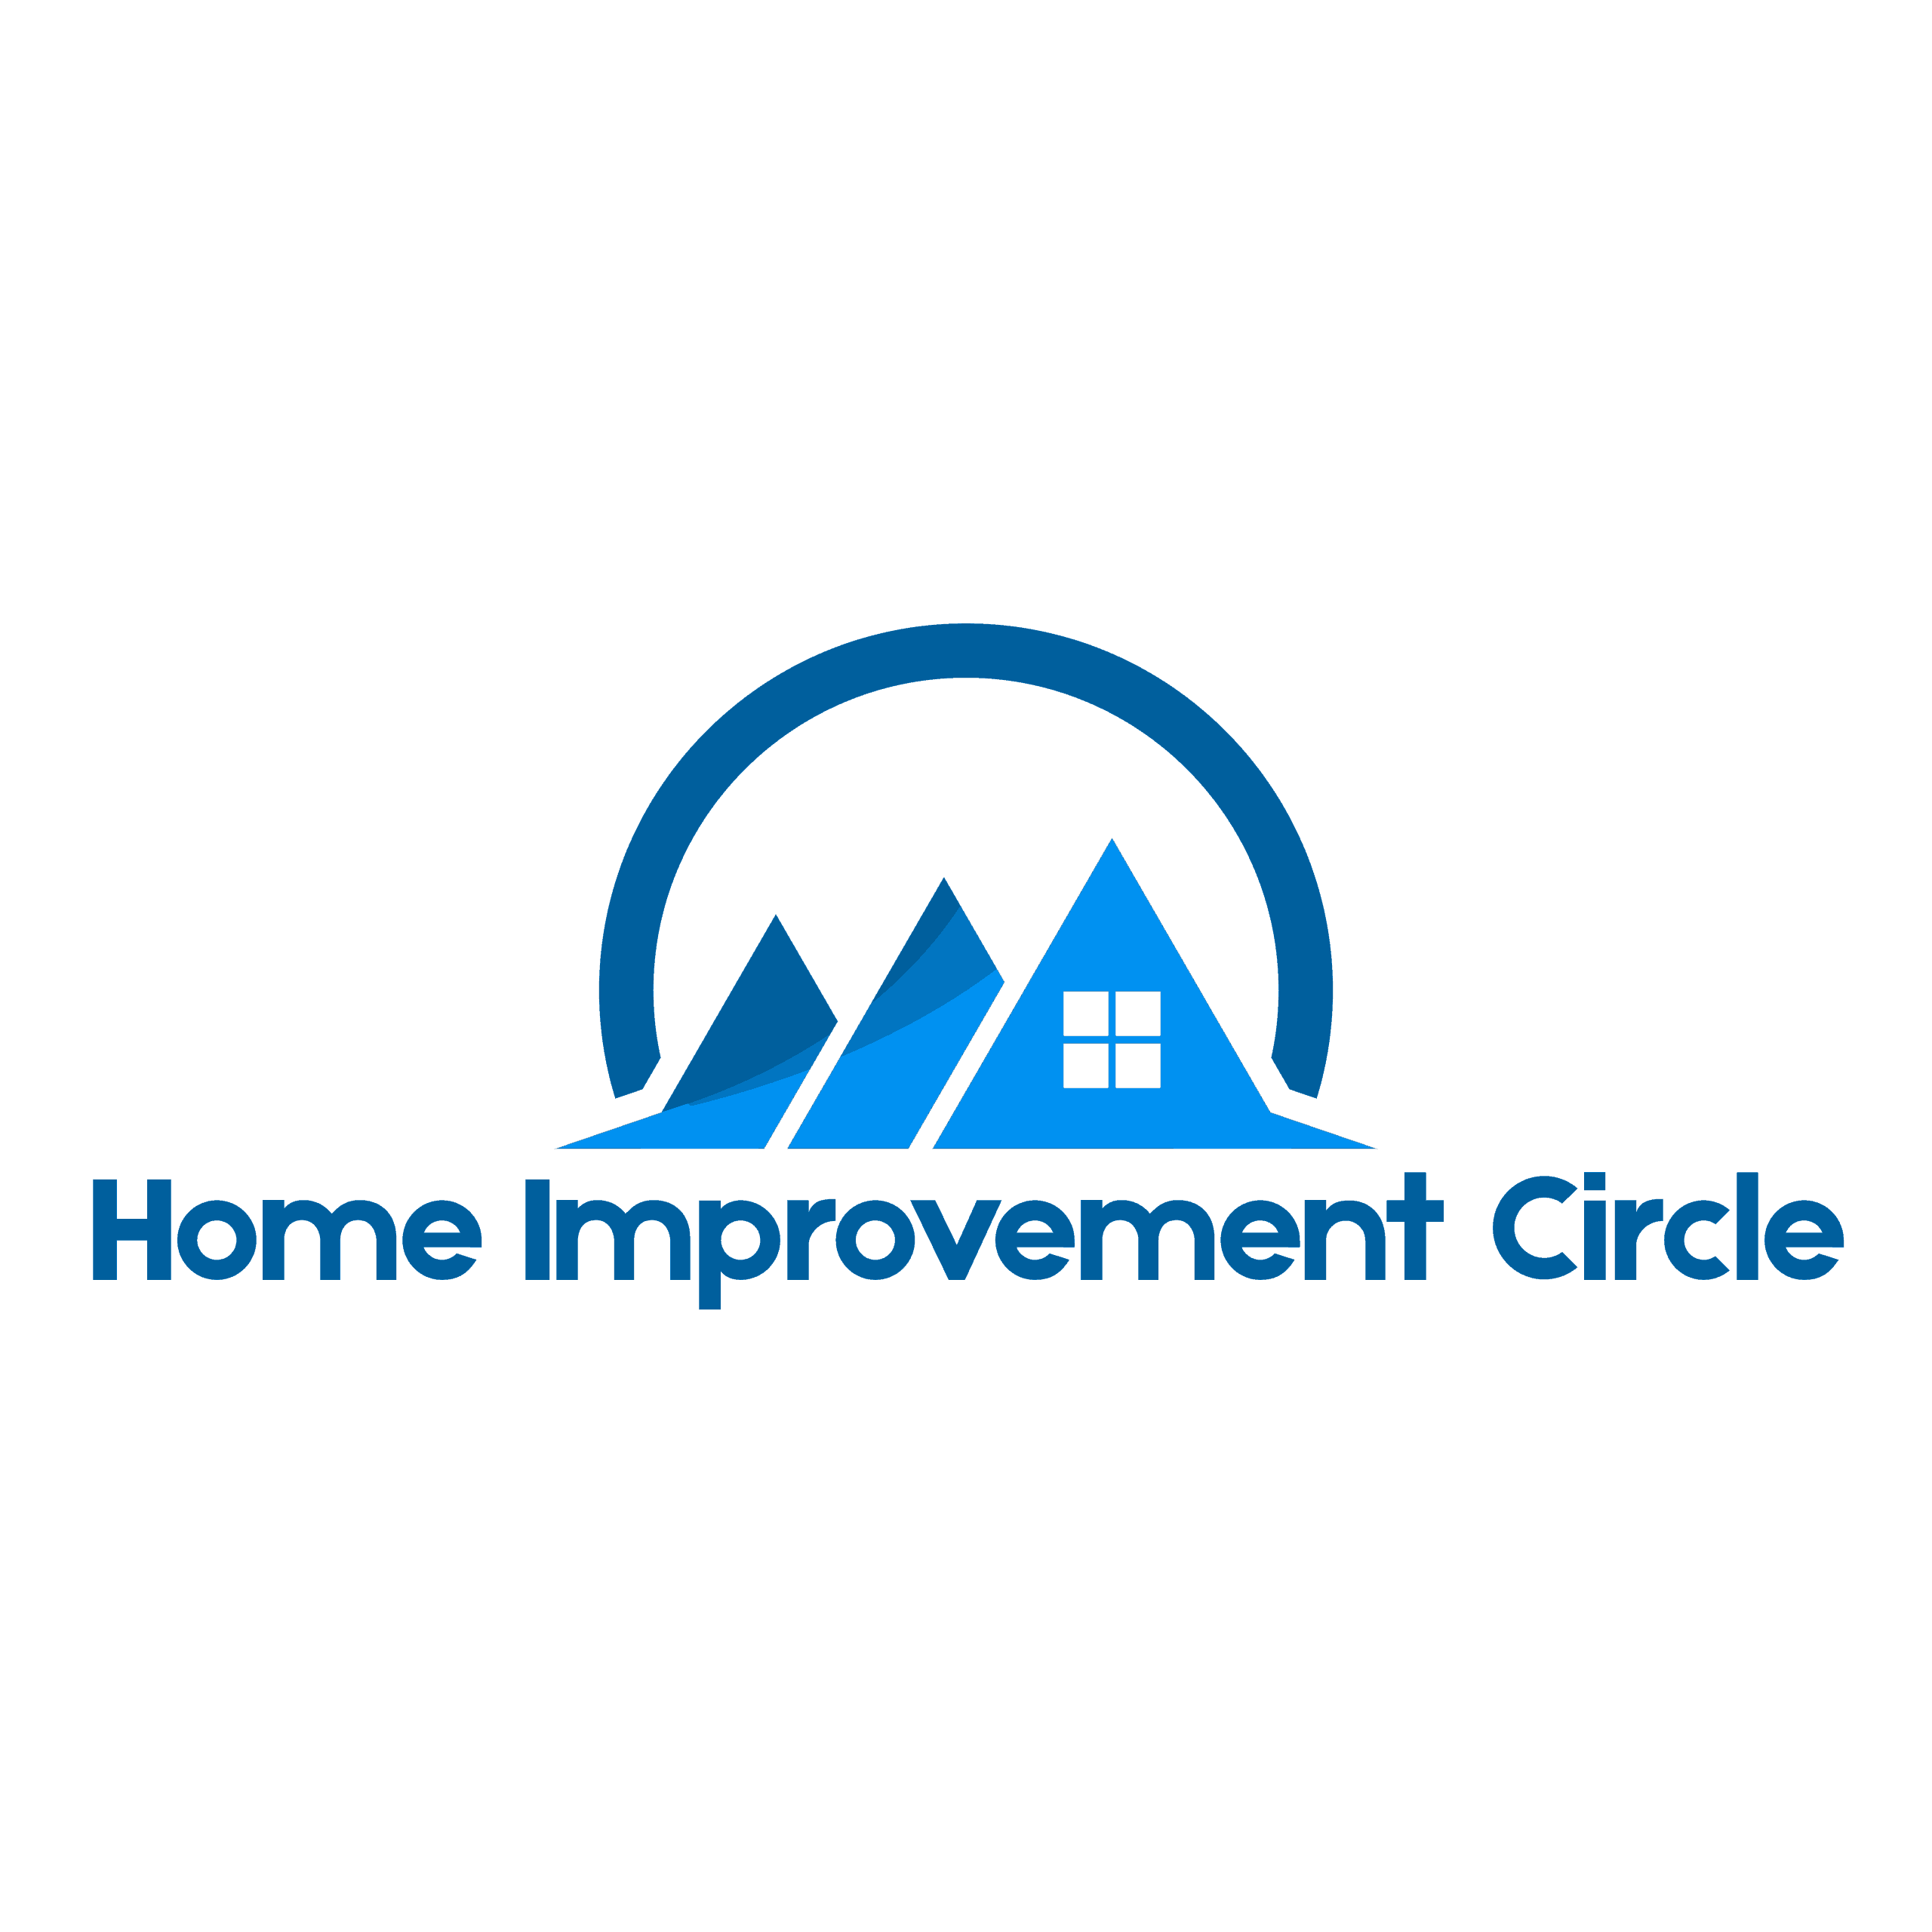 Home Improvement Circle